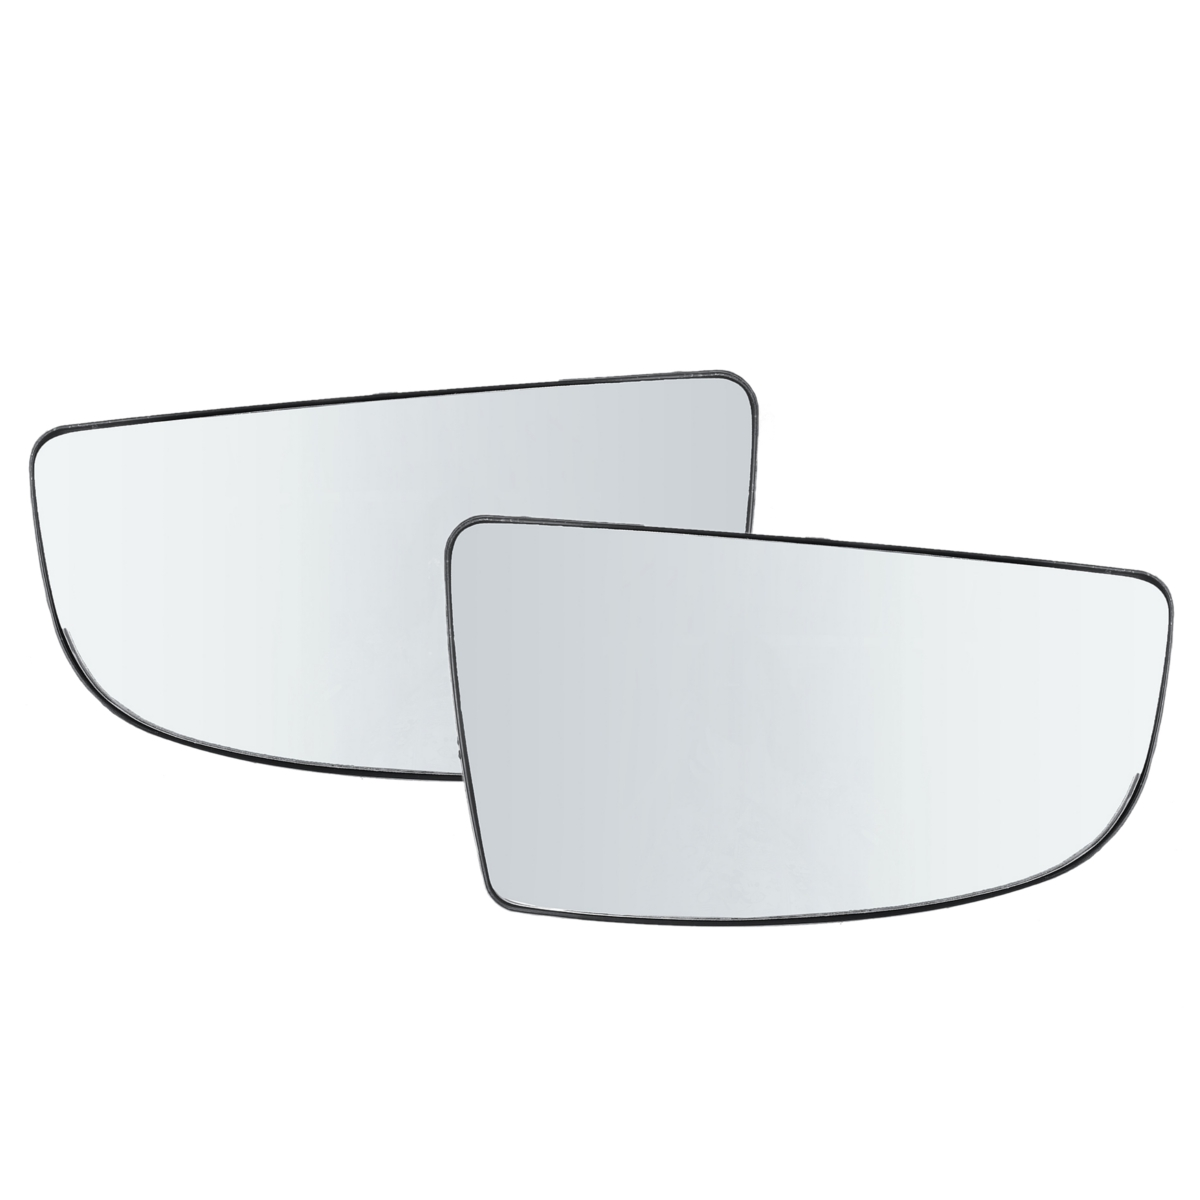 Left side mirror glass to suit FORD ECOSPORT 2014 onward HEATED base